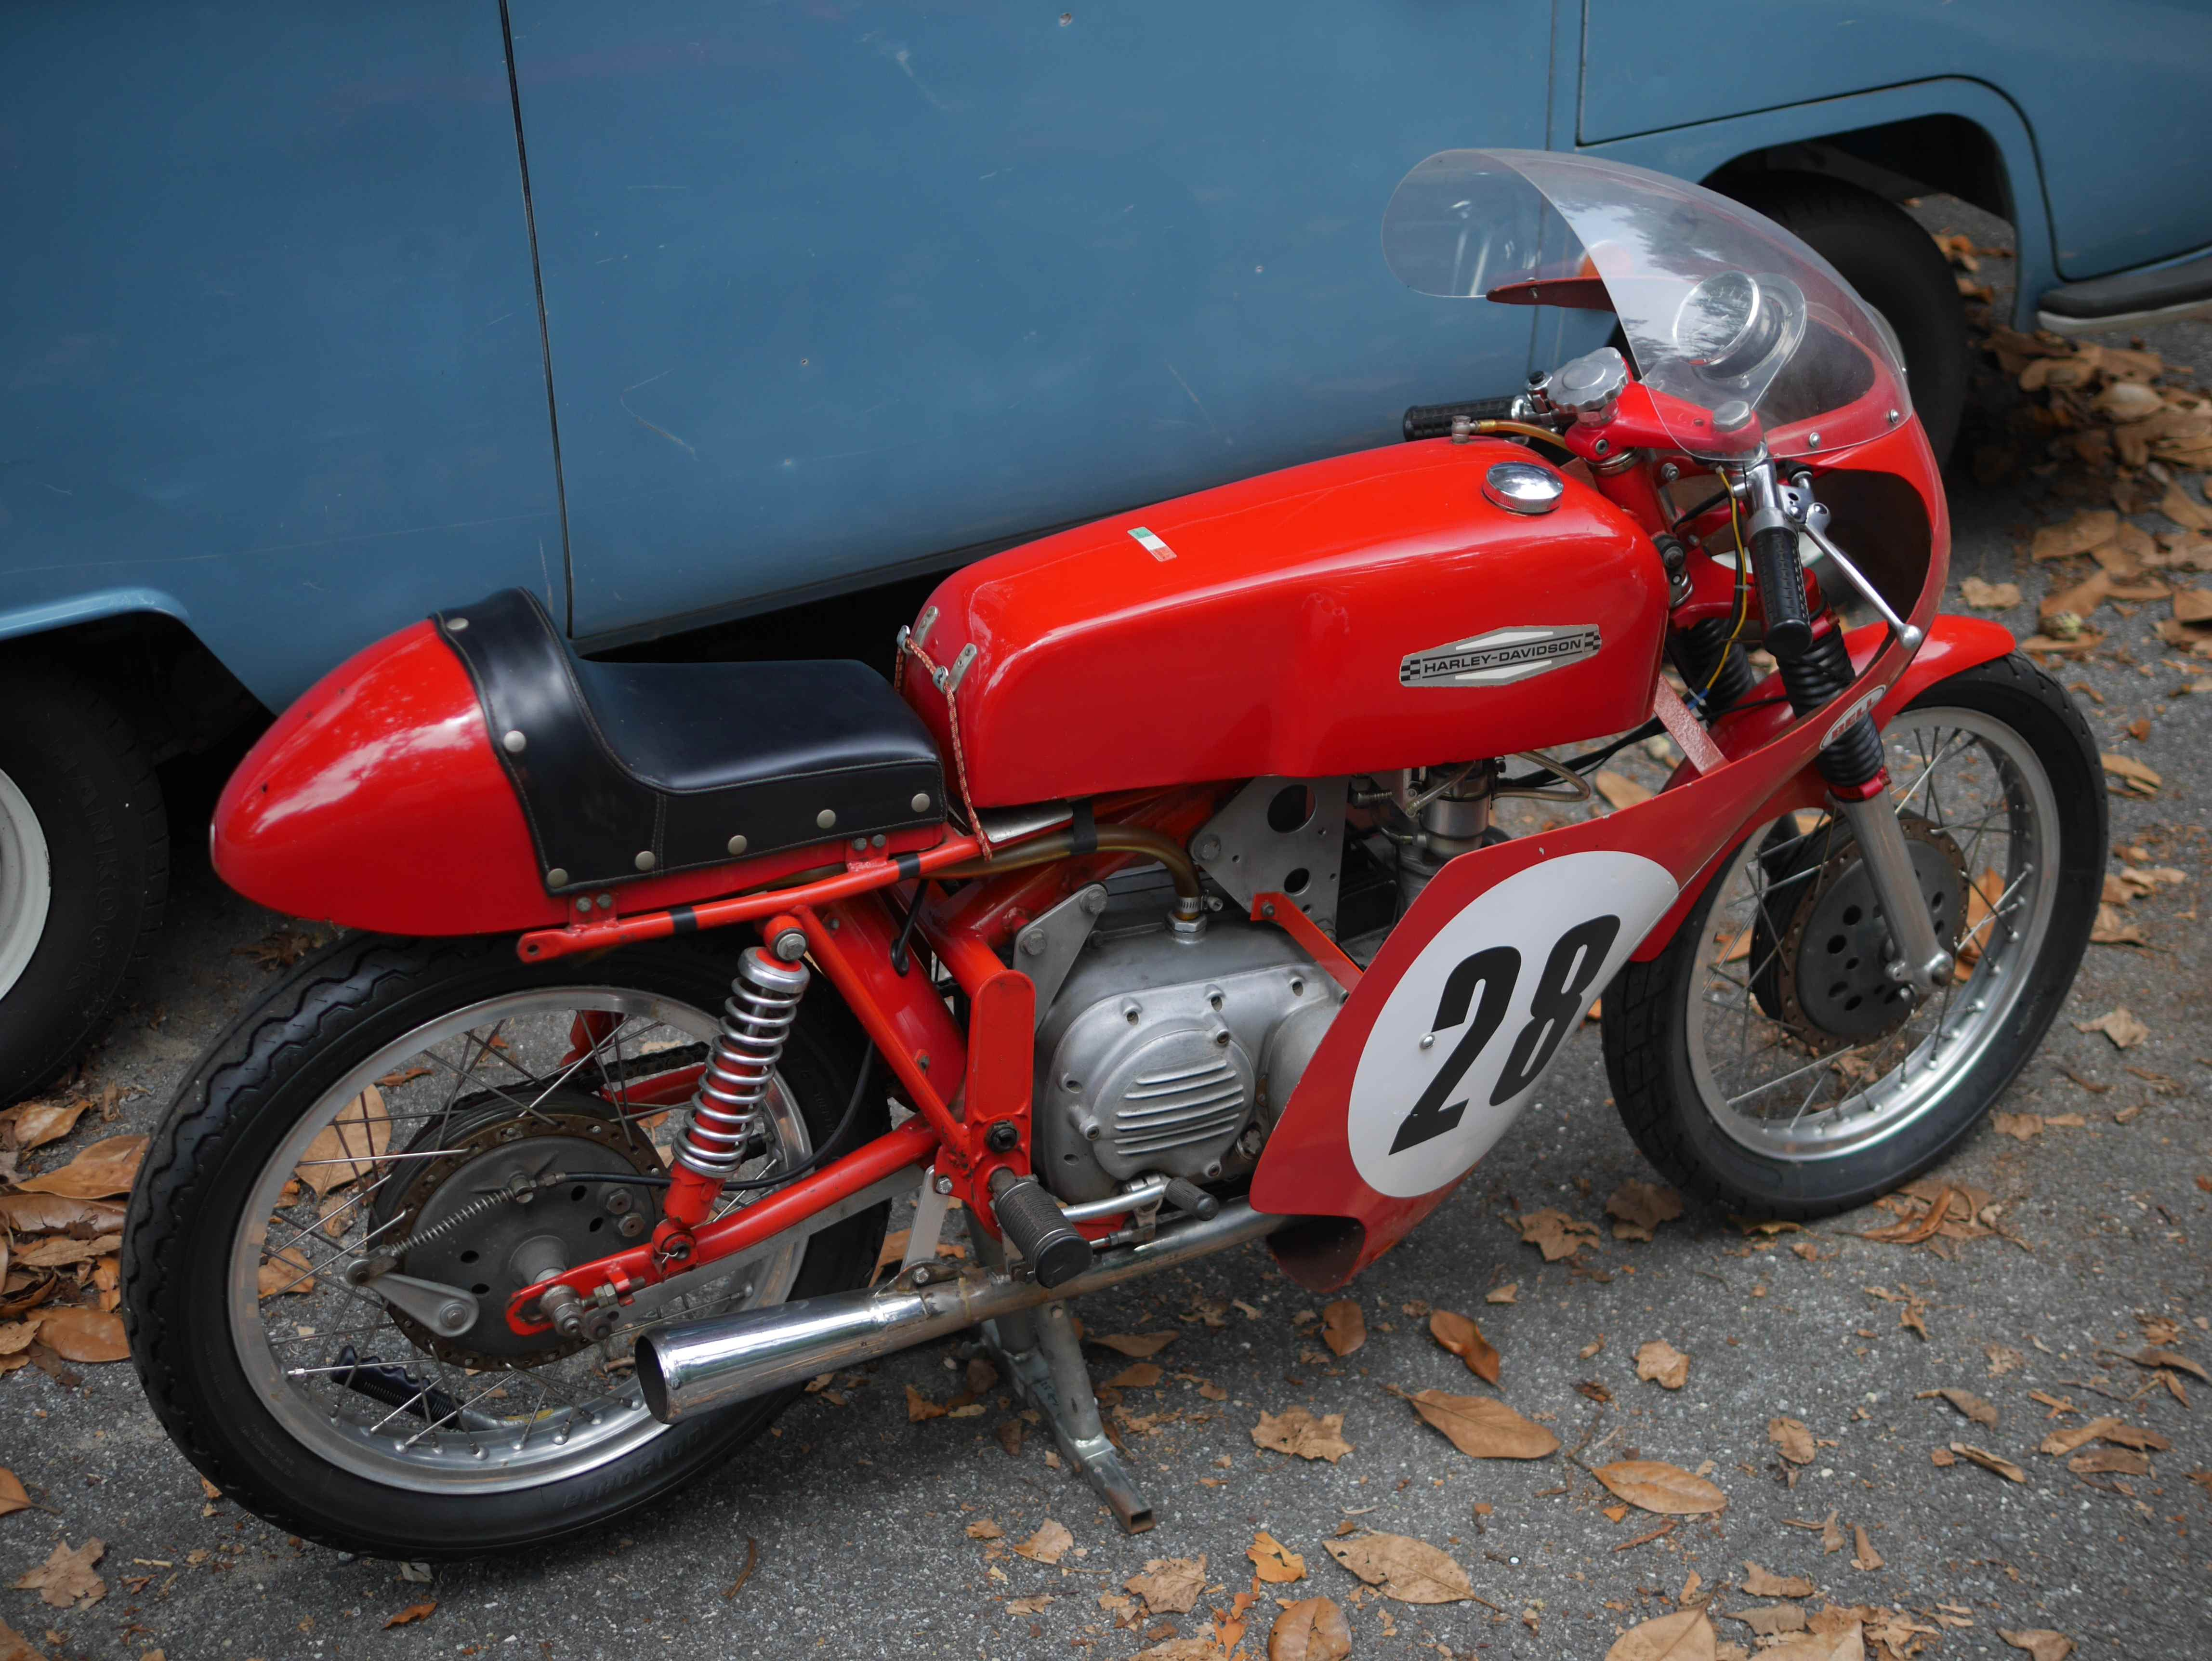 Aermacchi motorcycles Archives - Global Dimension